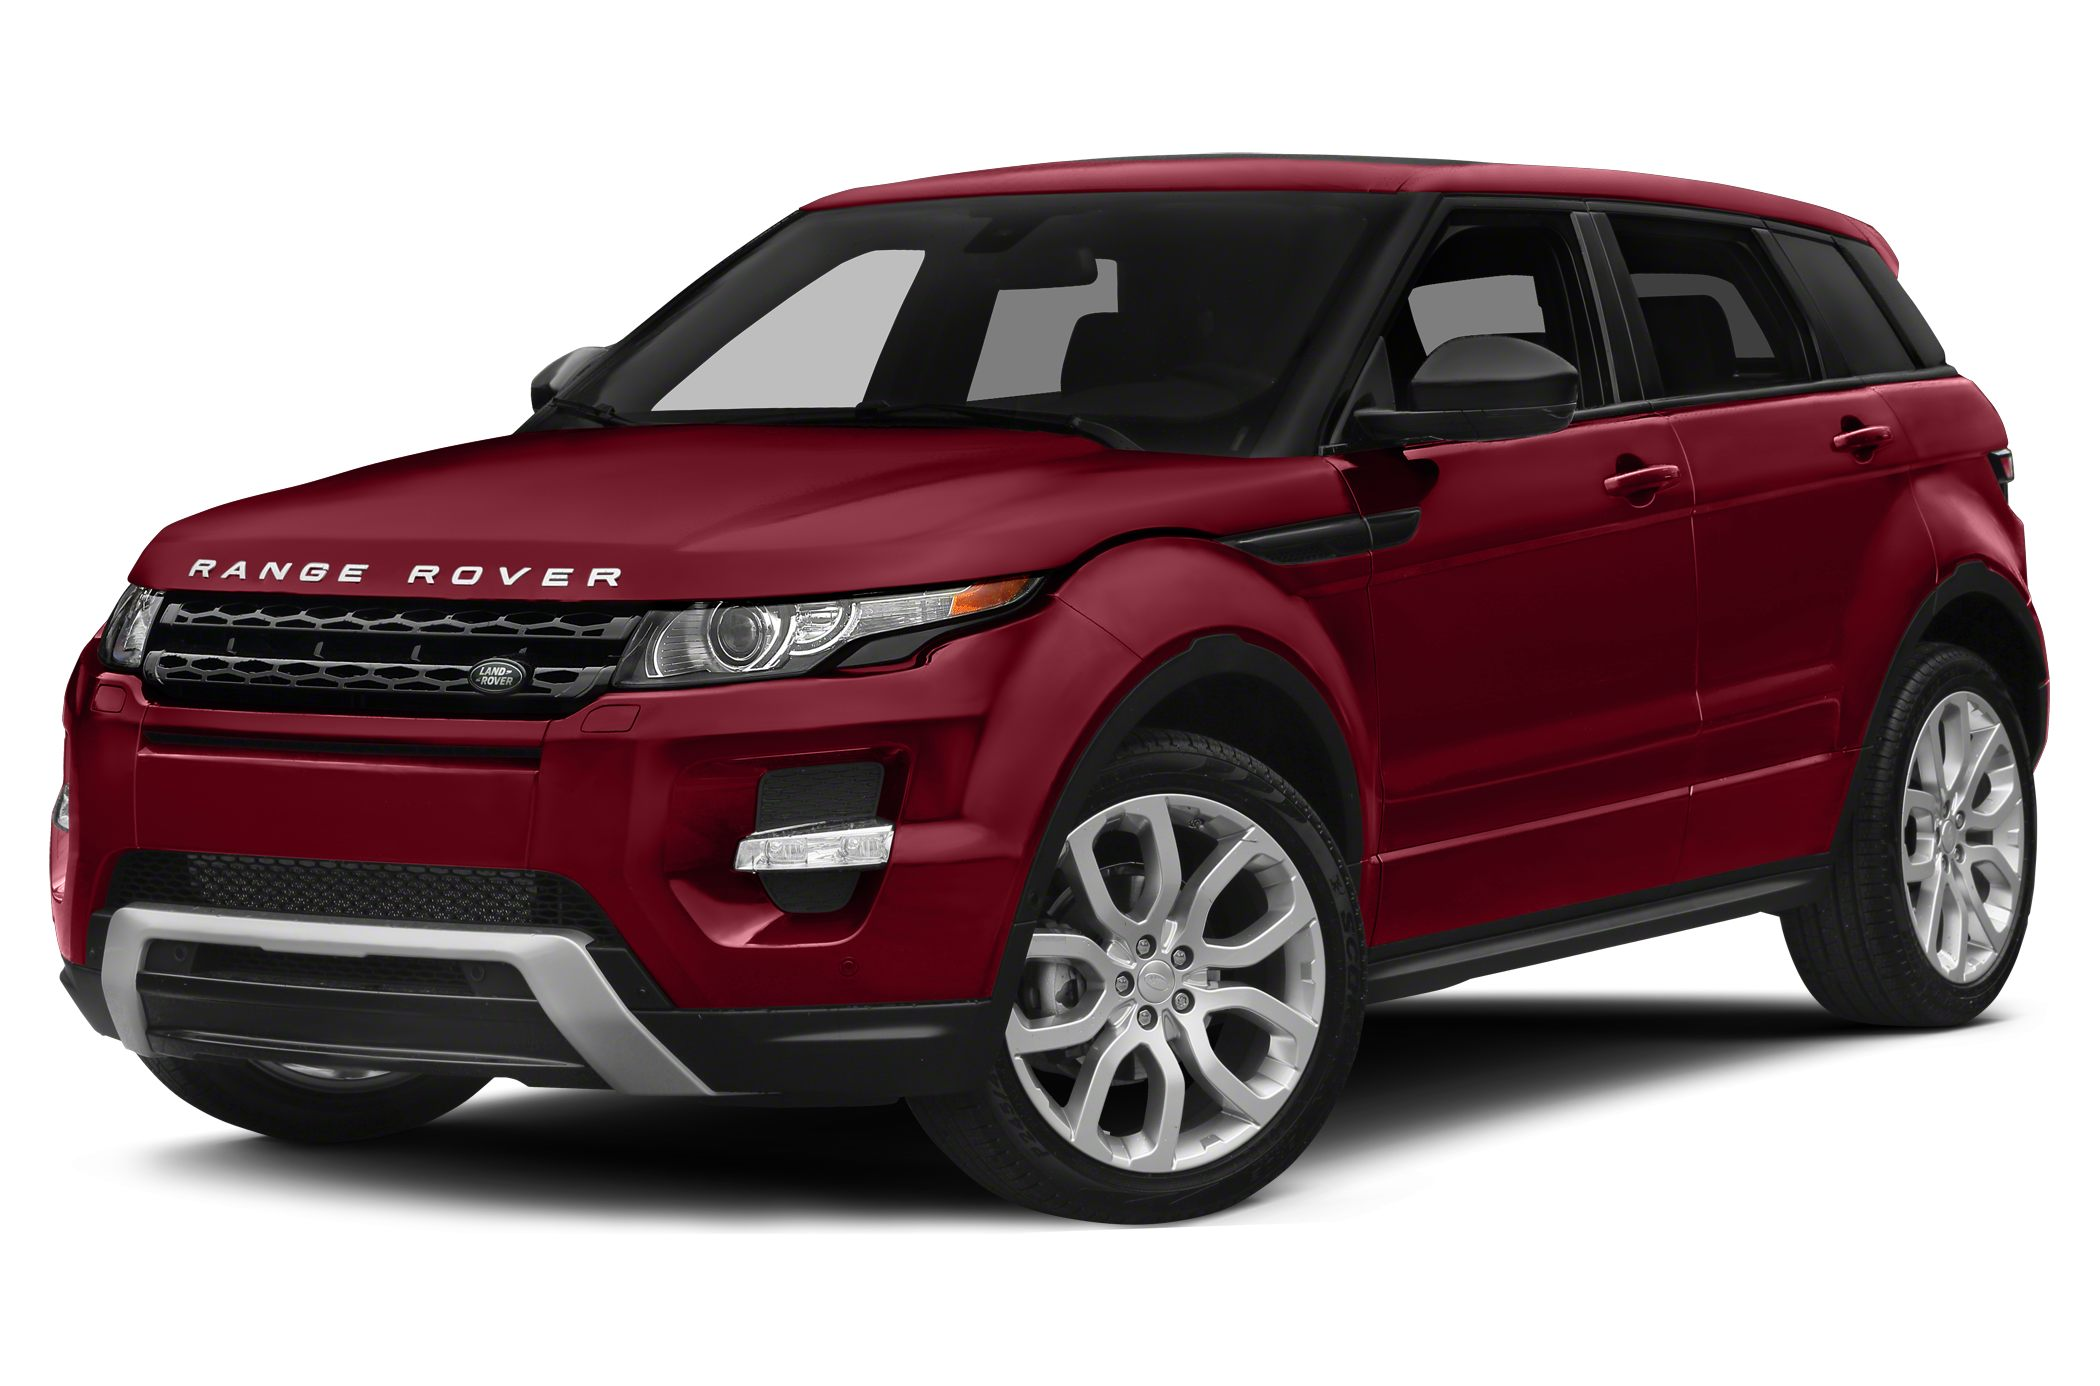 2014 Land Rover Range Rover Evoque Pure 4x4 5 Door Specs and Prices